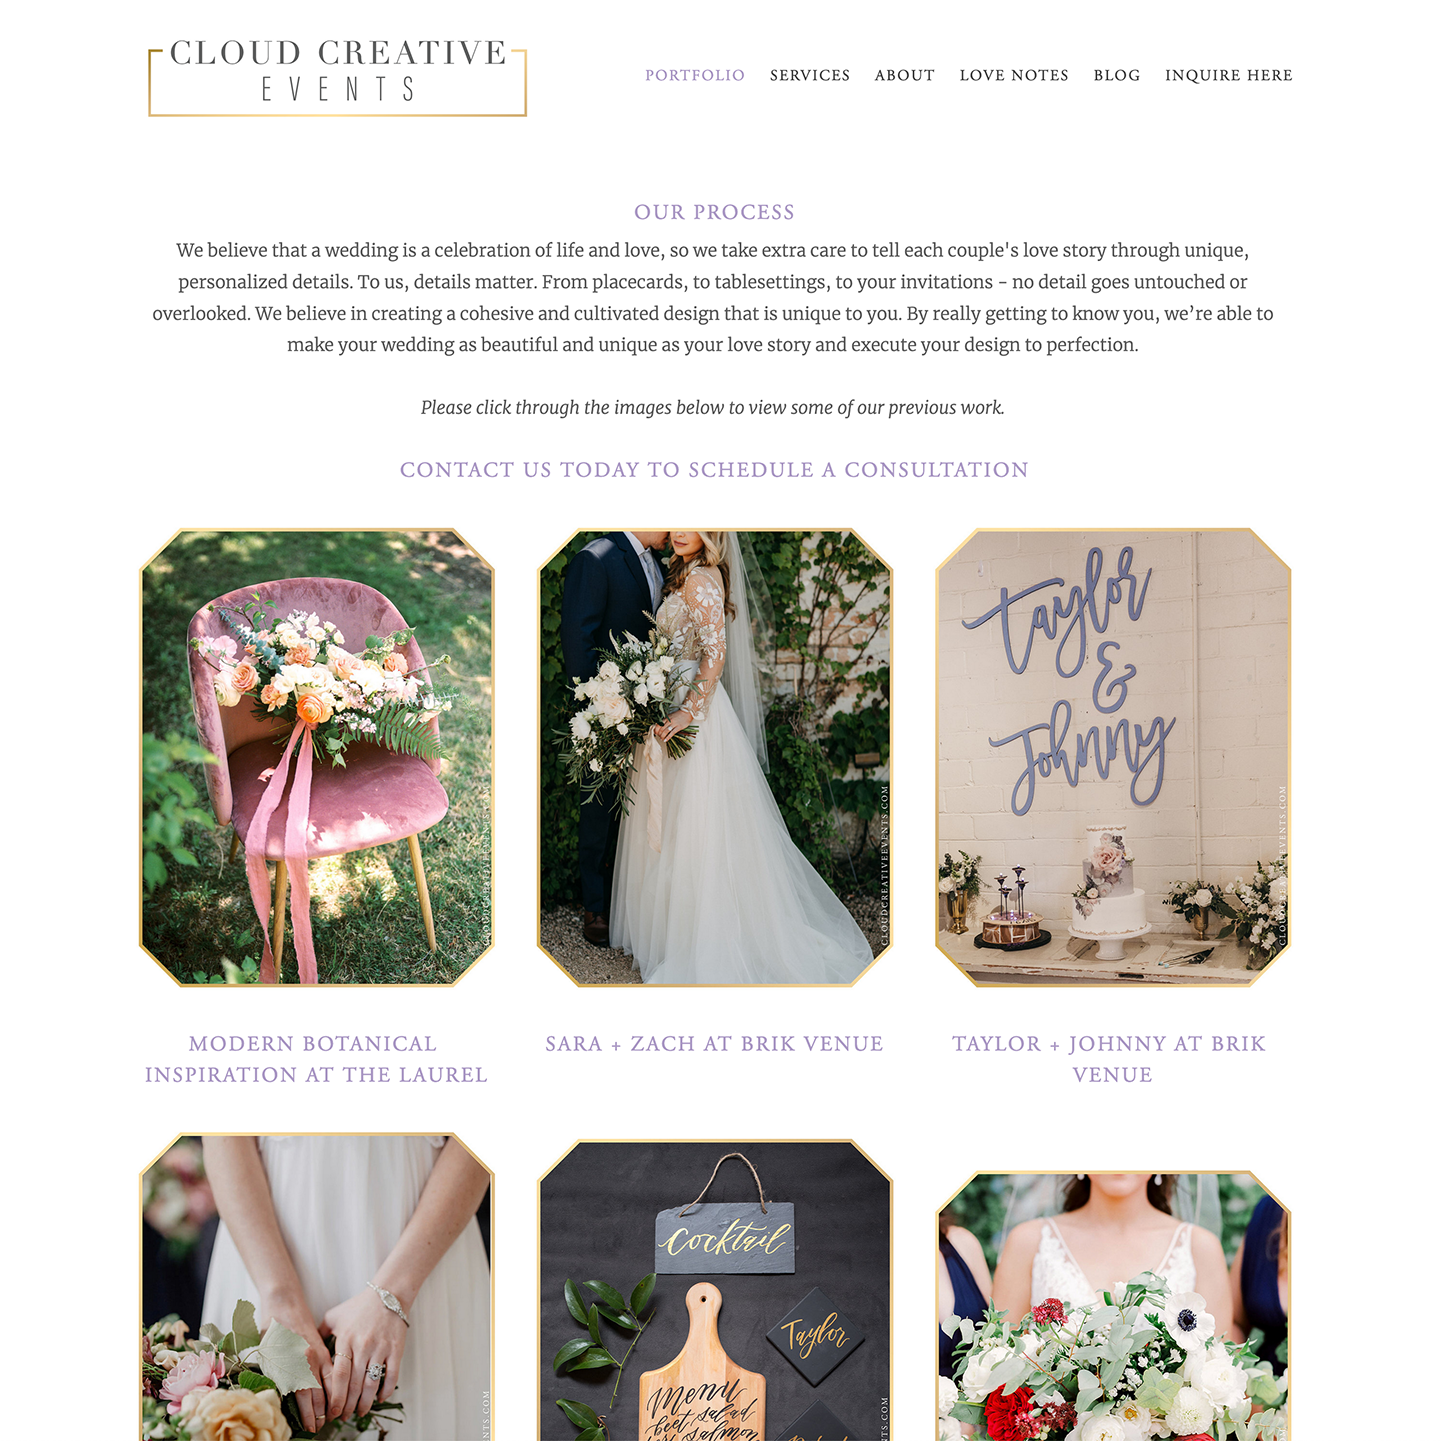 cloudcreative-webdesign-weddingplanner.png